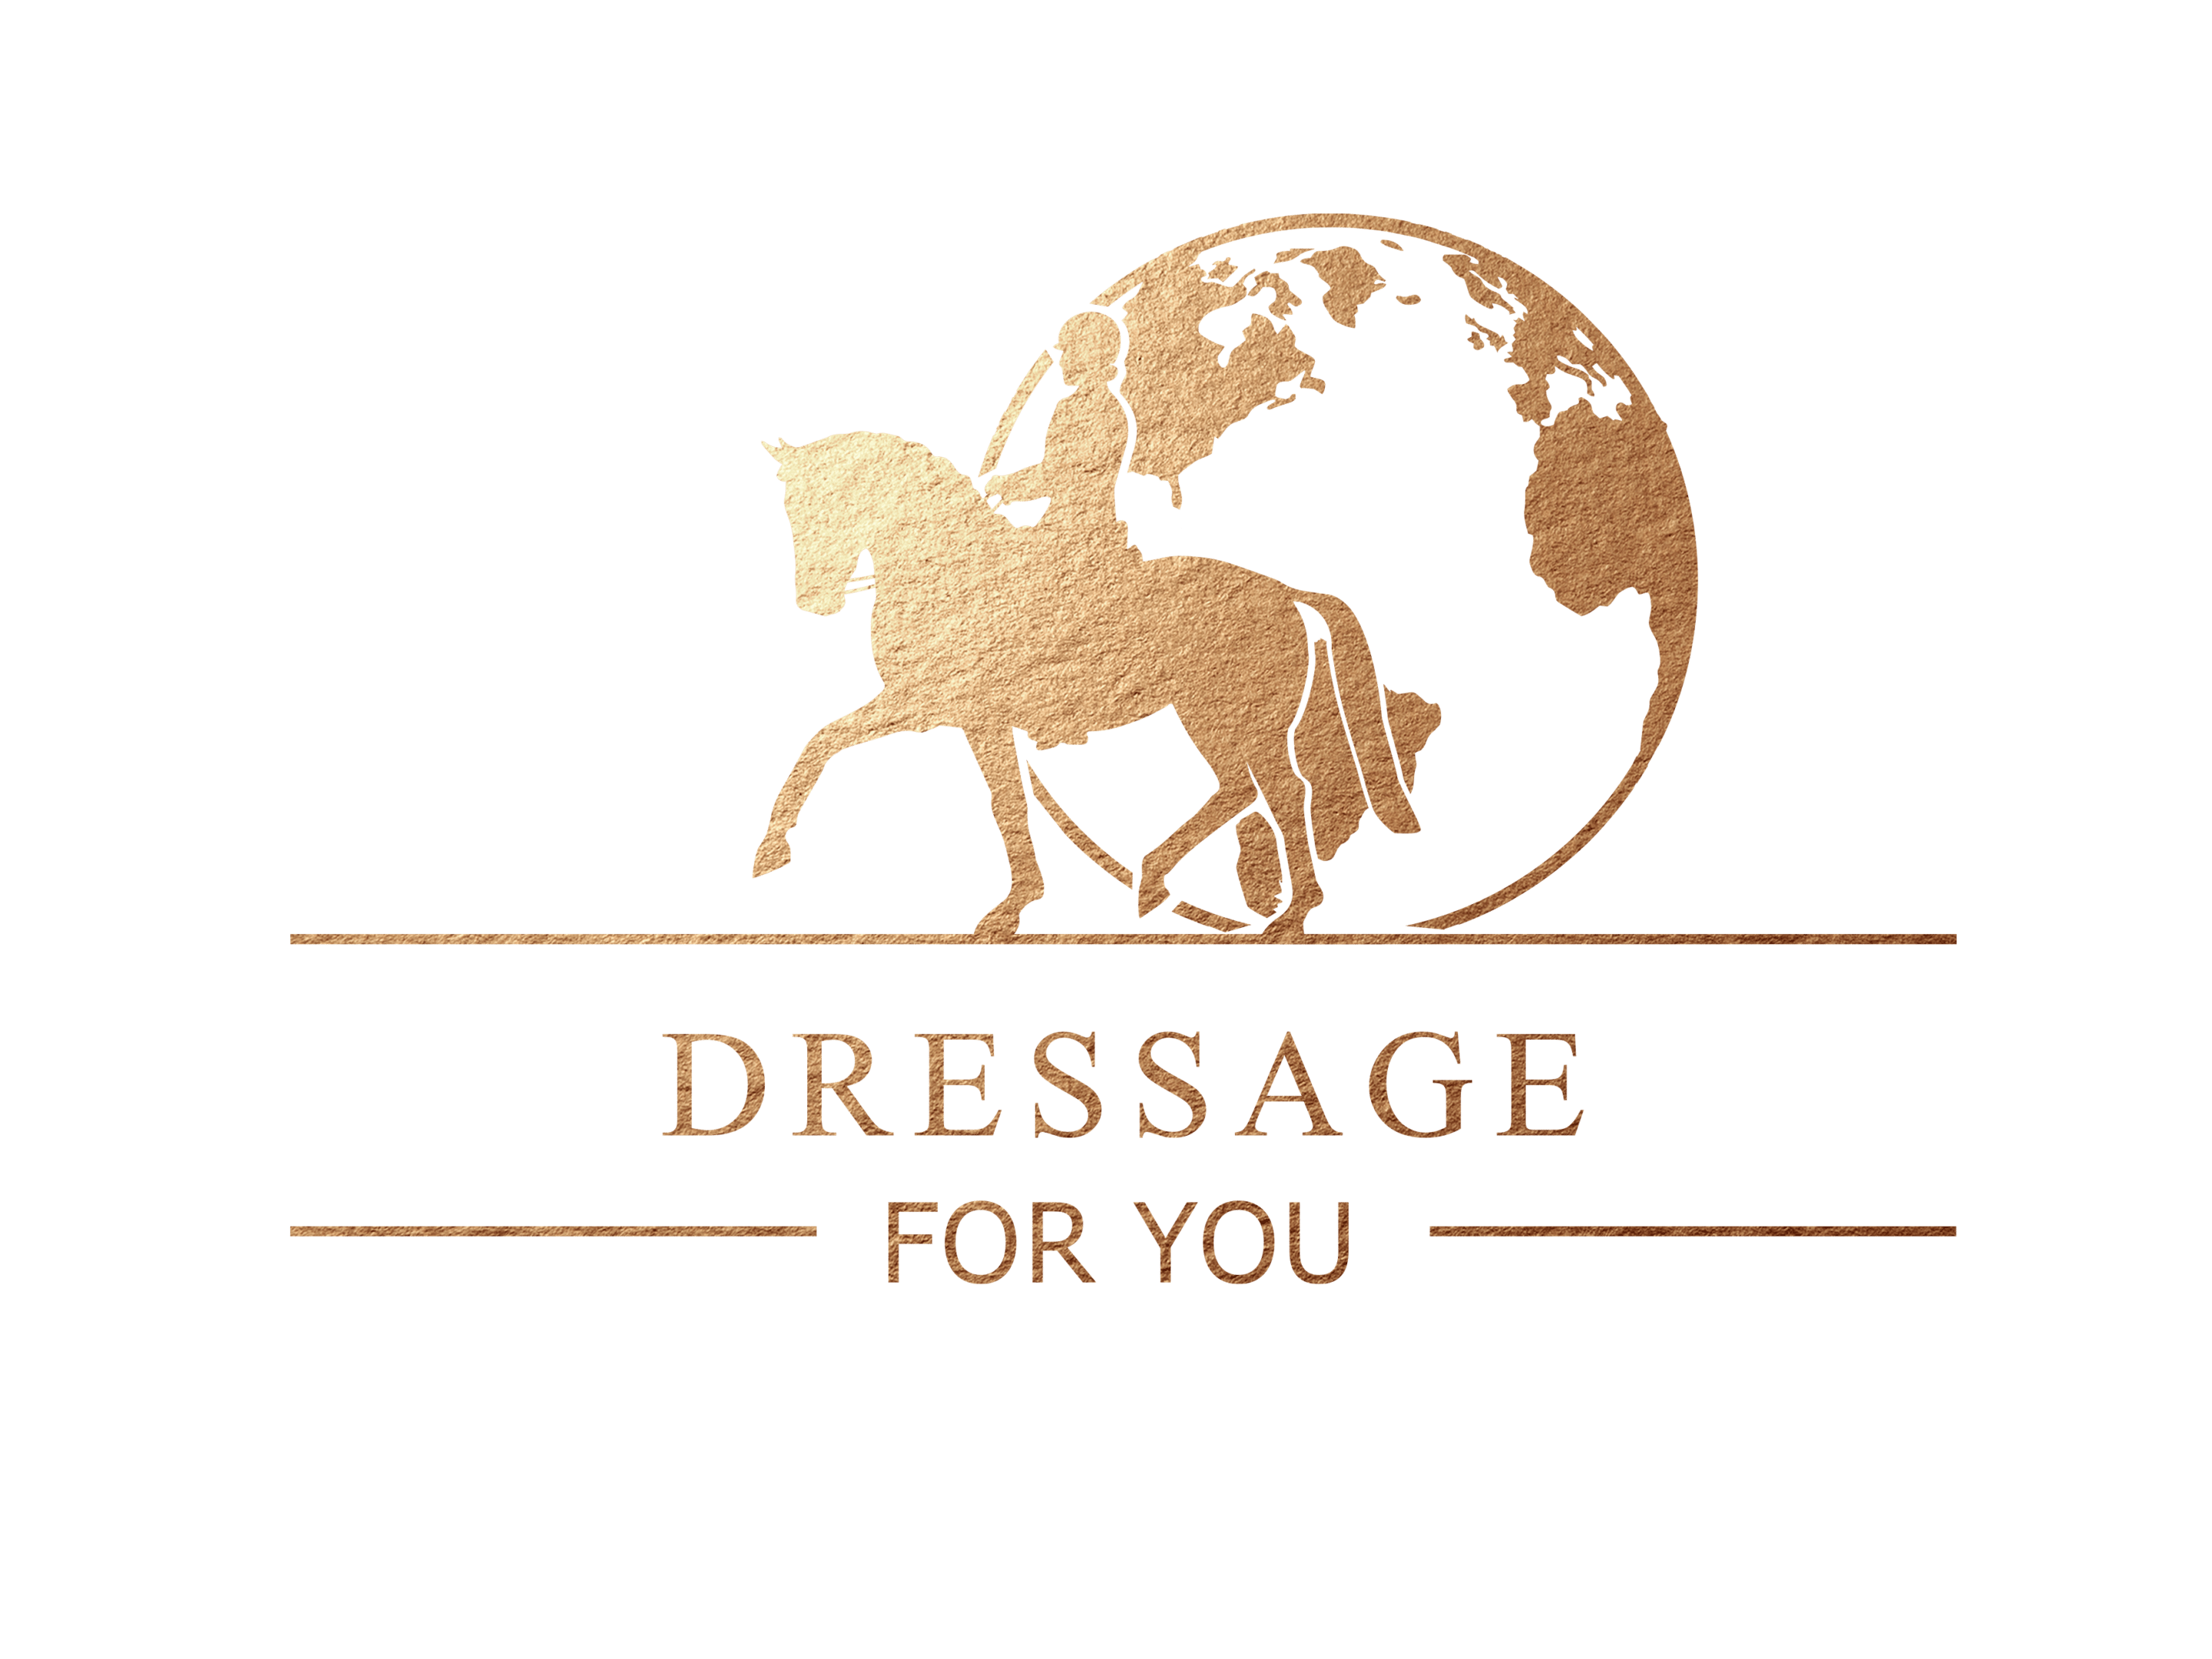 Dressage For You